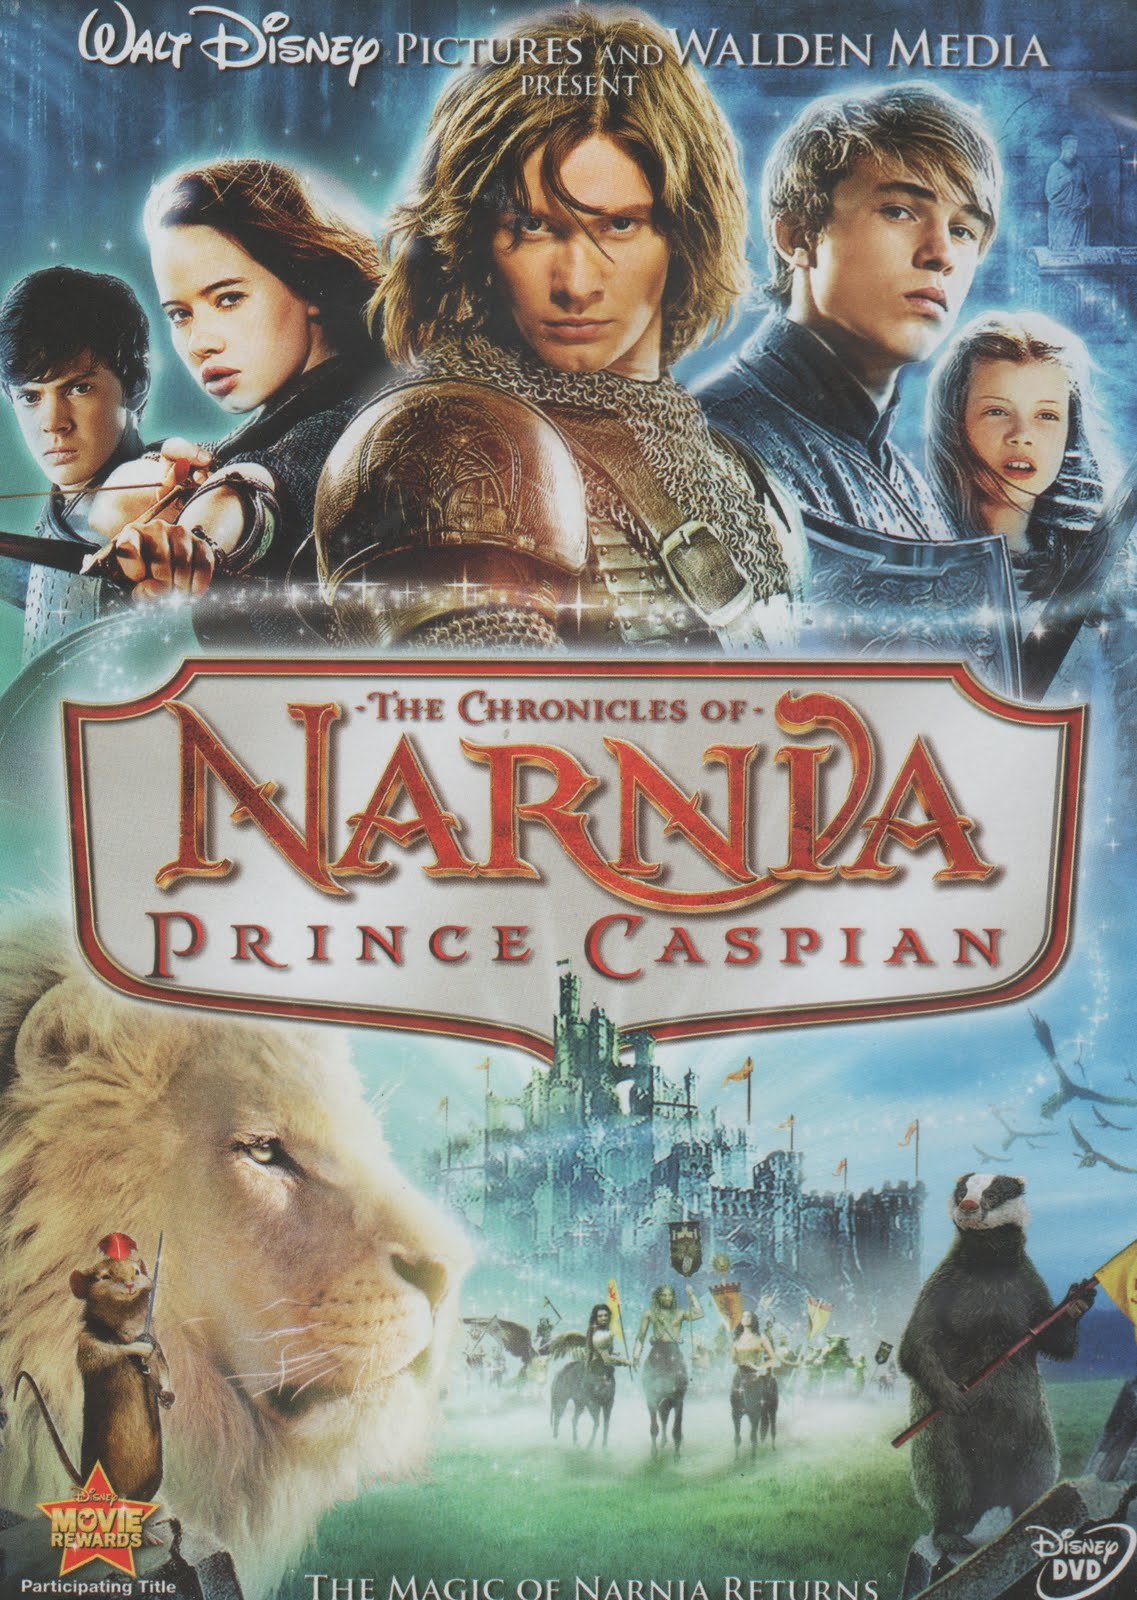 randuwa  c s lewis narnia series i suppose at one time it was the cat s meow of children s serial fantasy fiction written as christian apologetic allegory